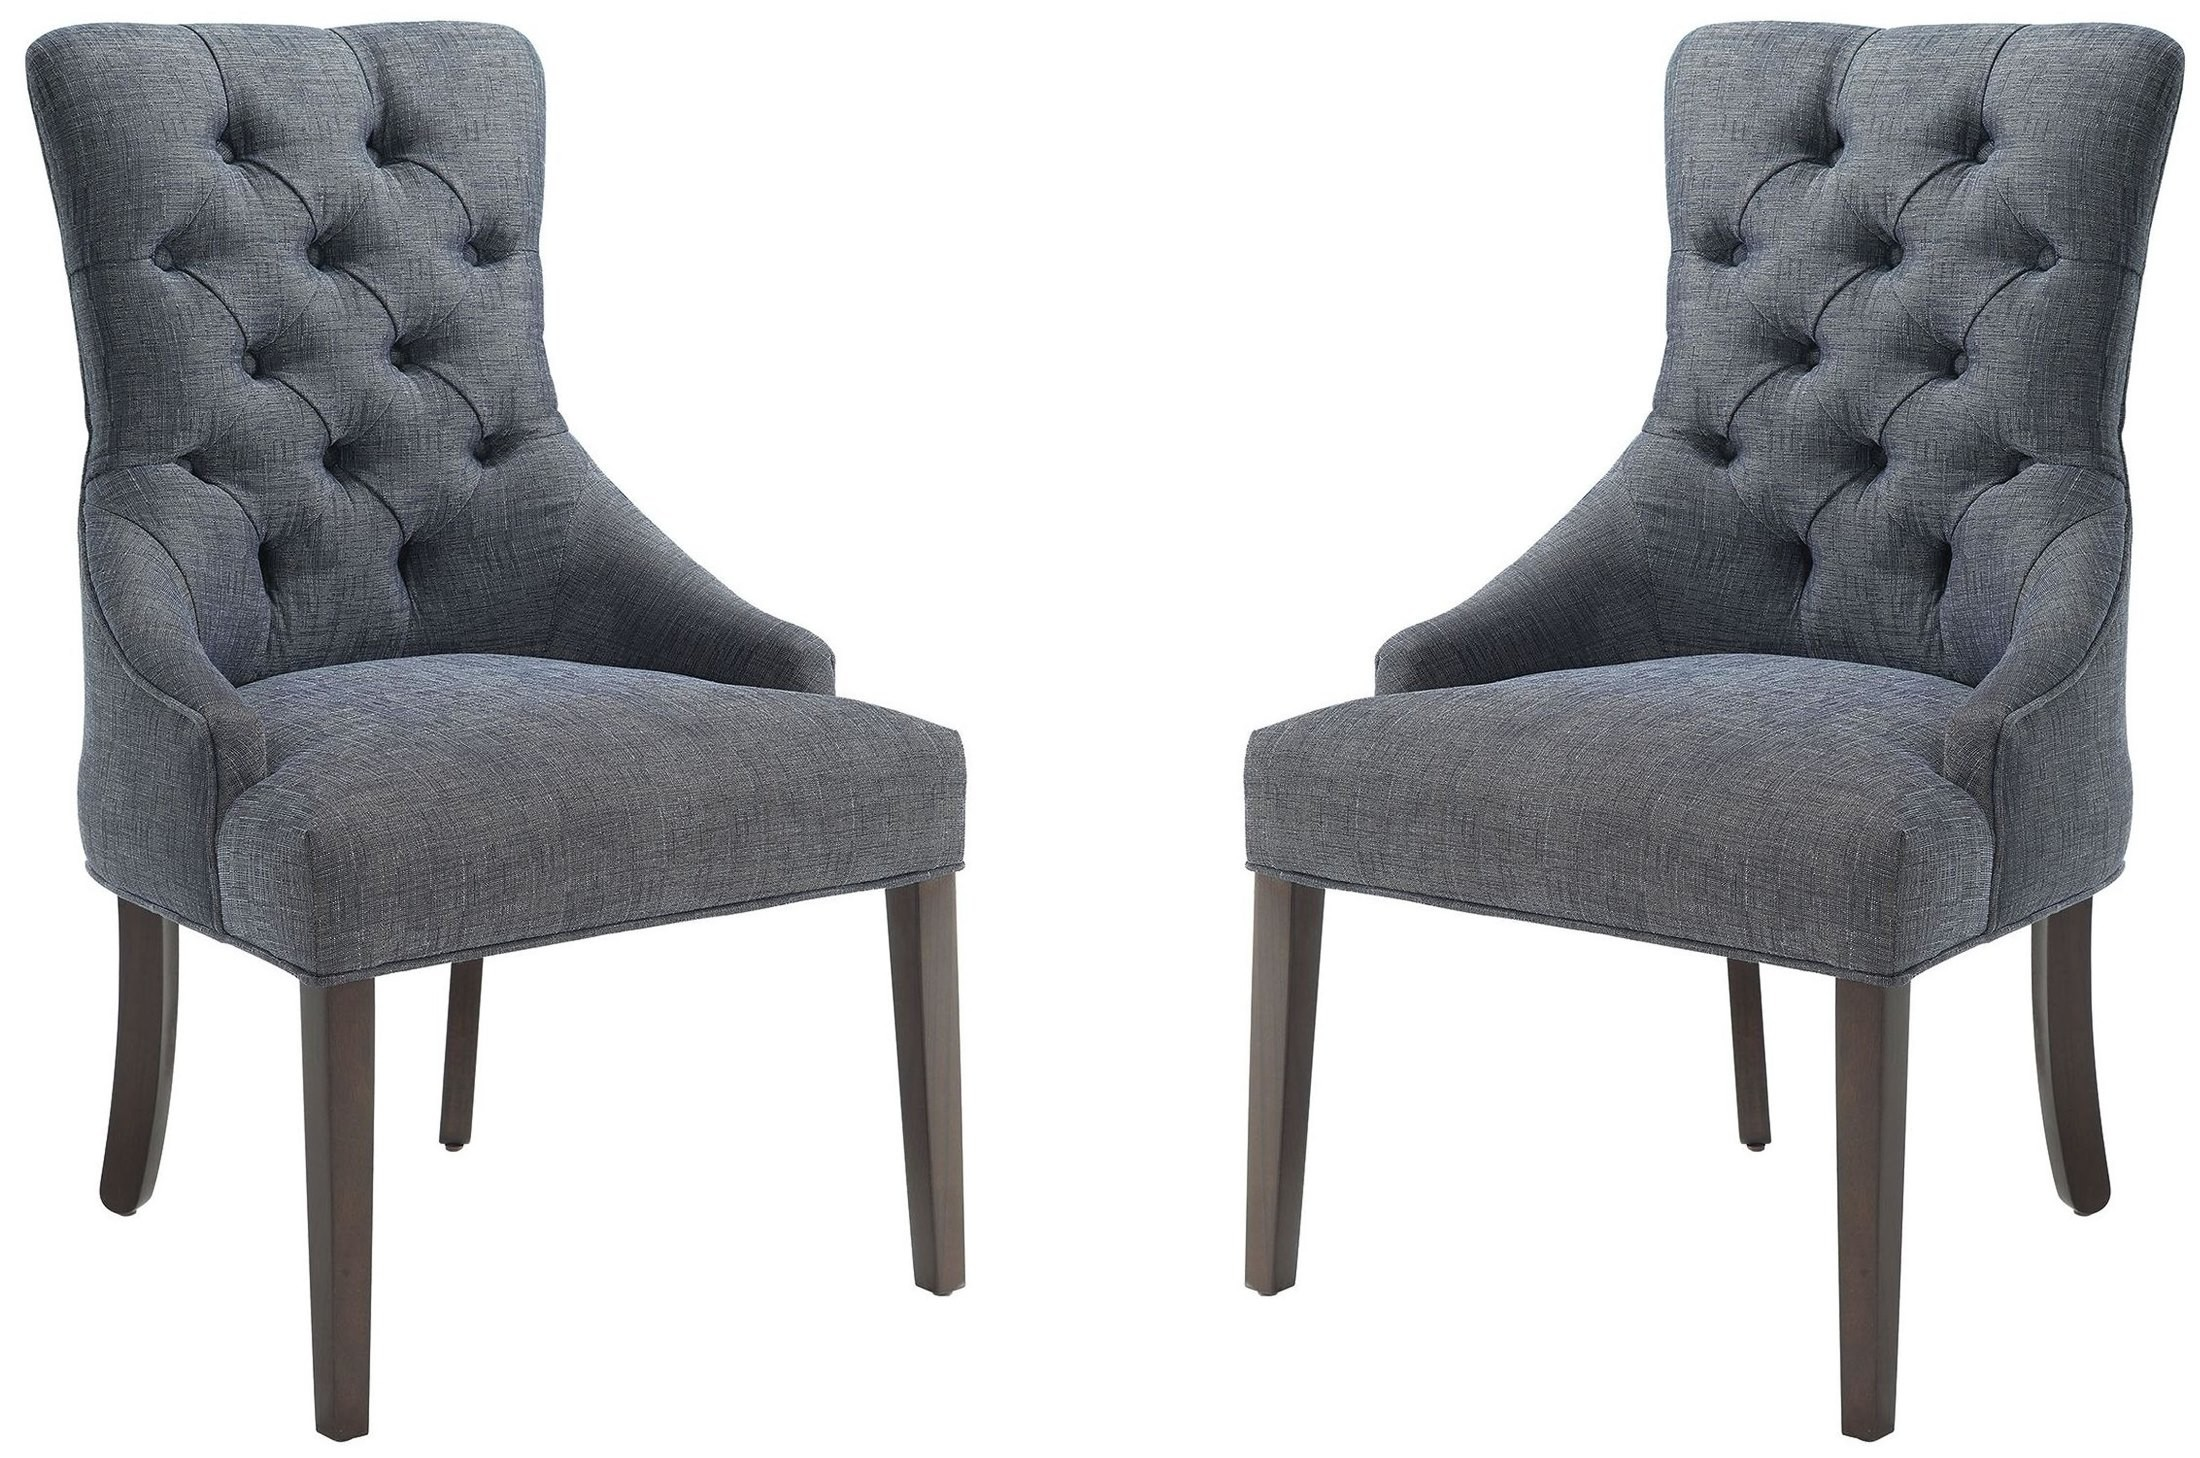 Caprice Grey Upholstered Accent Chair Set of 2 902912